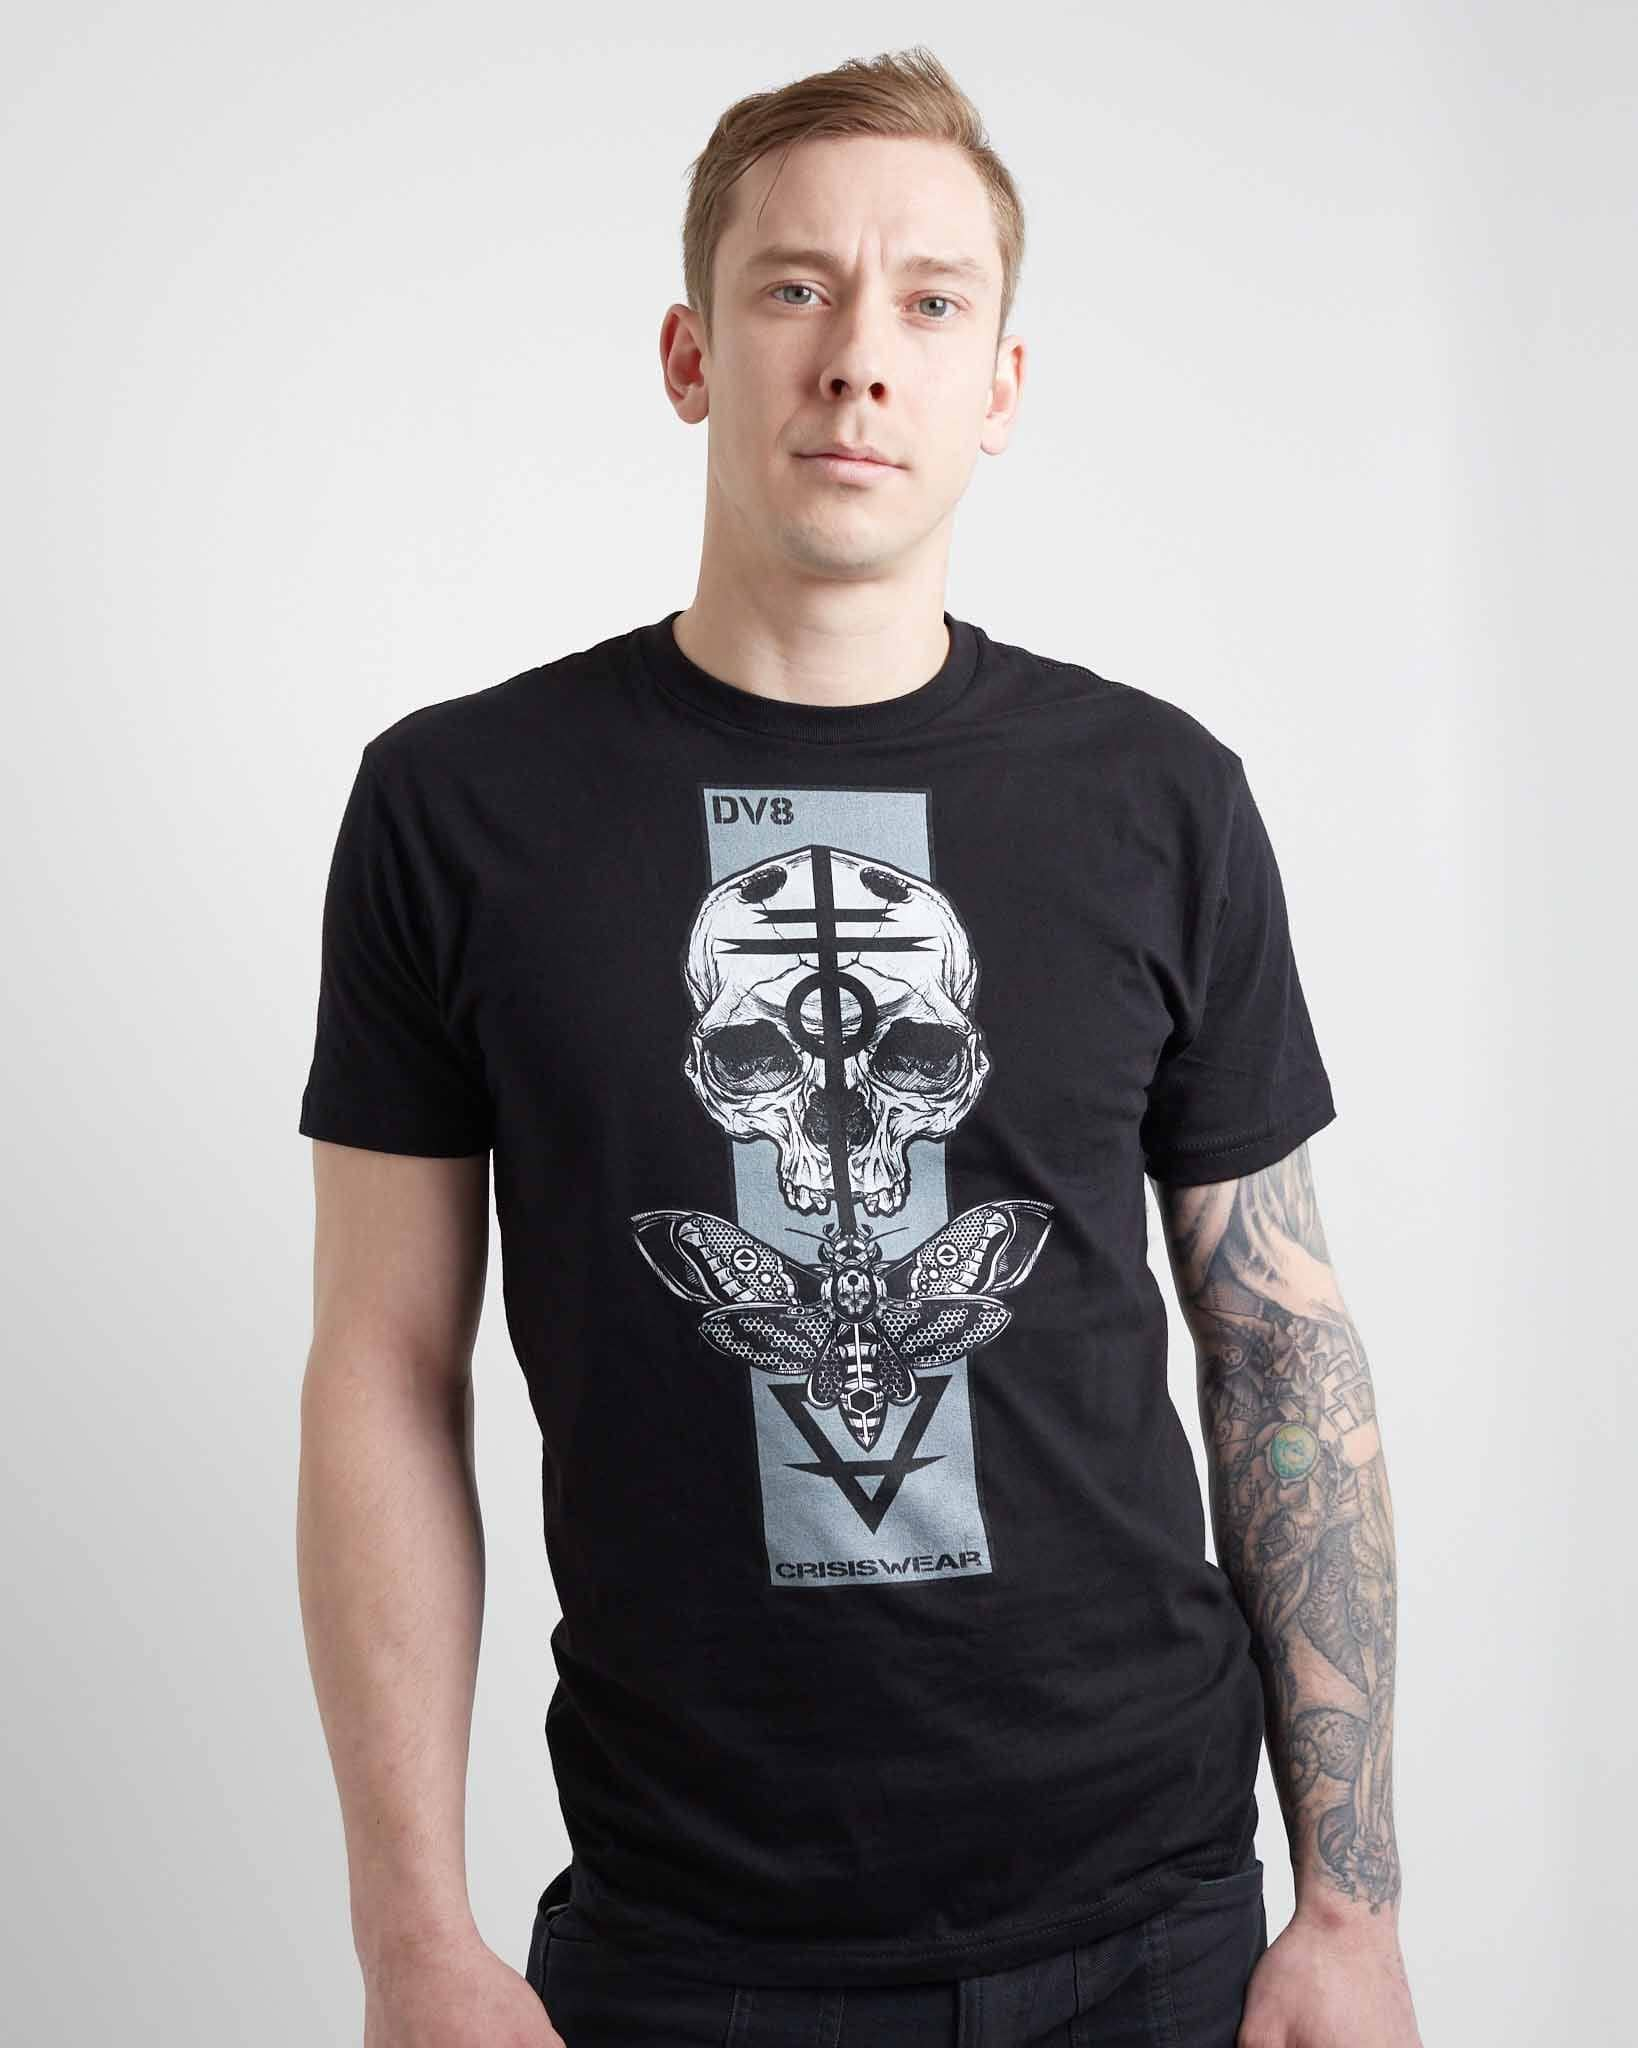 Salt of the Earth Tee - Crisiswear Clothing